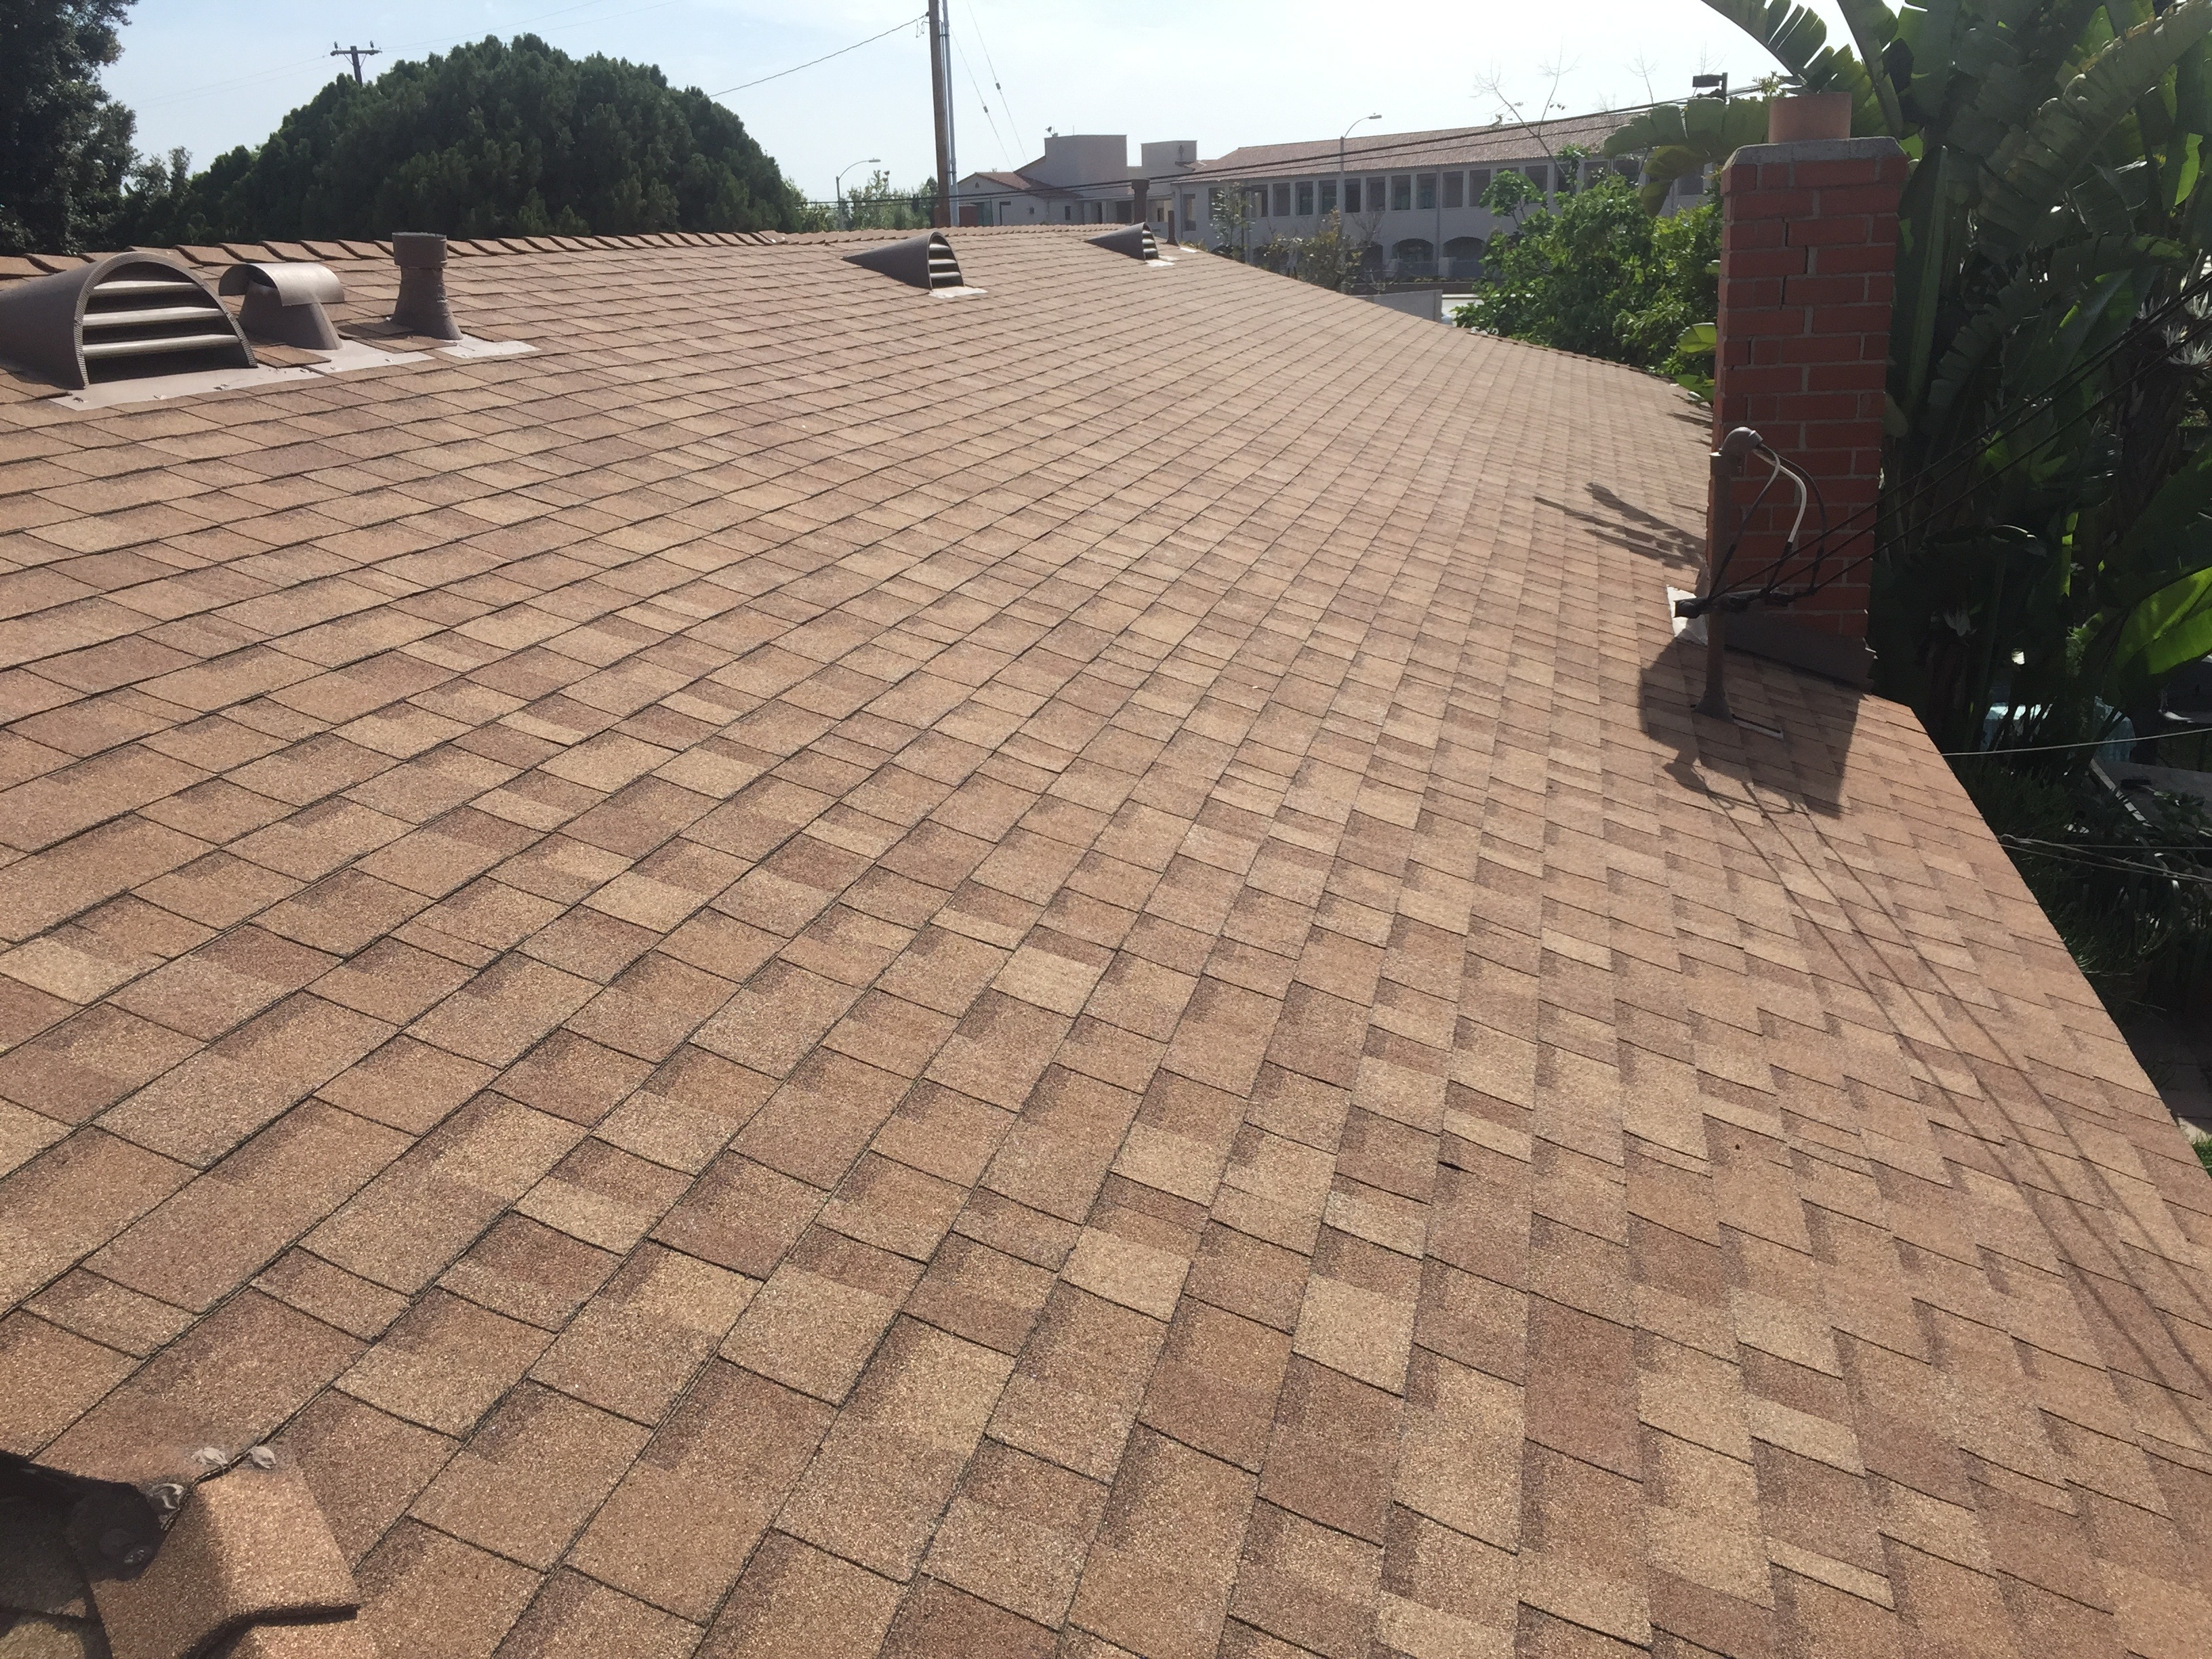 Asphalt Composition Shingle Reroof